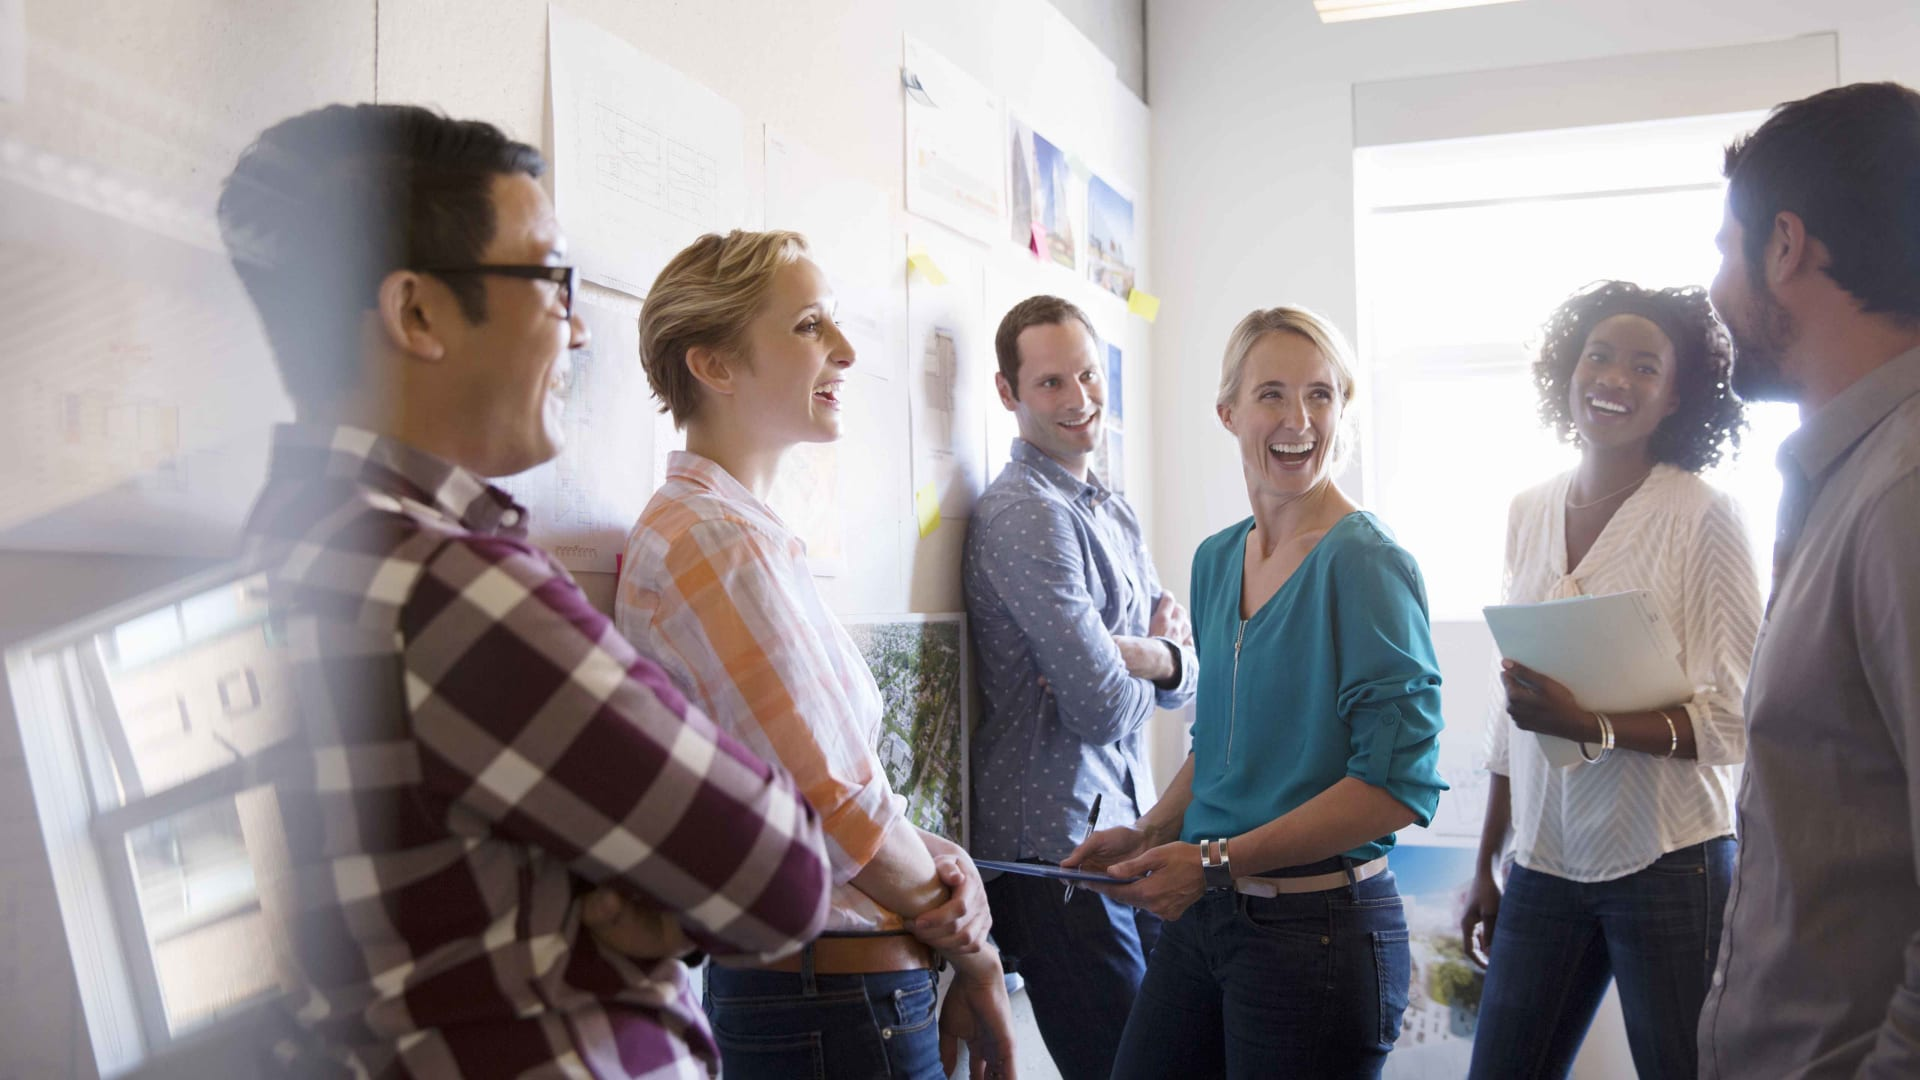 What Managers and Team Members Must Do to Build a Healthy Organization